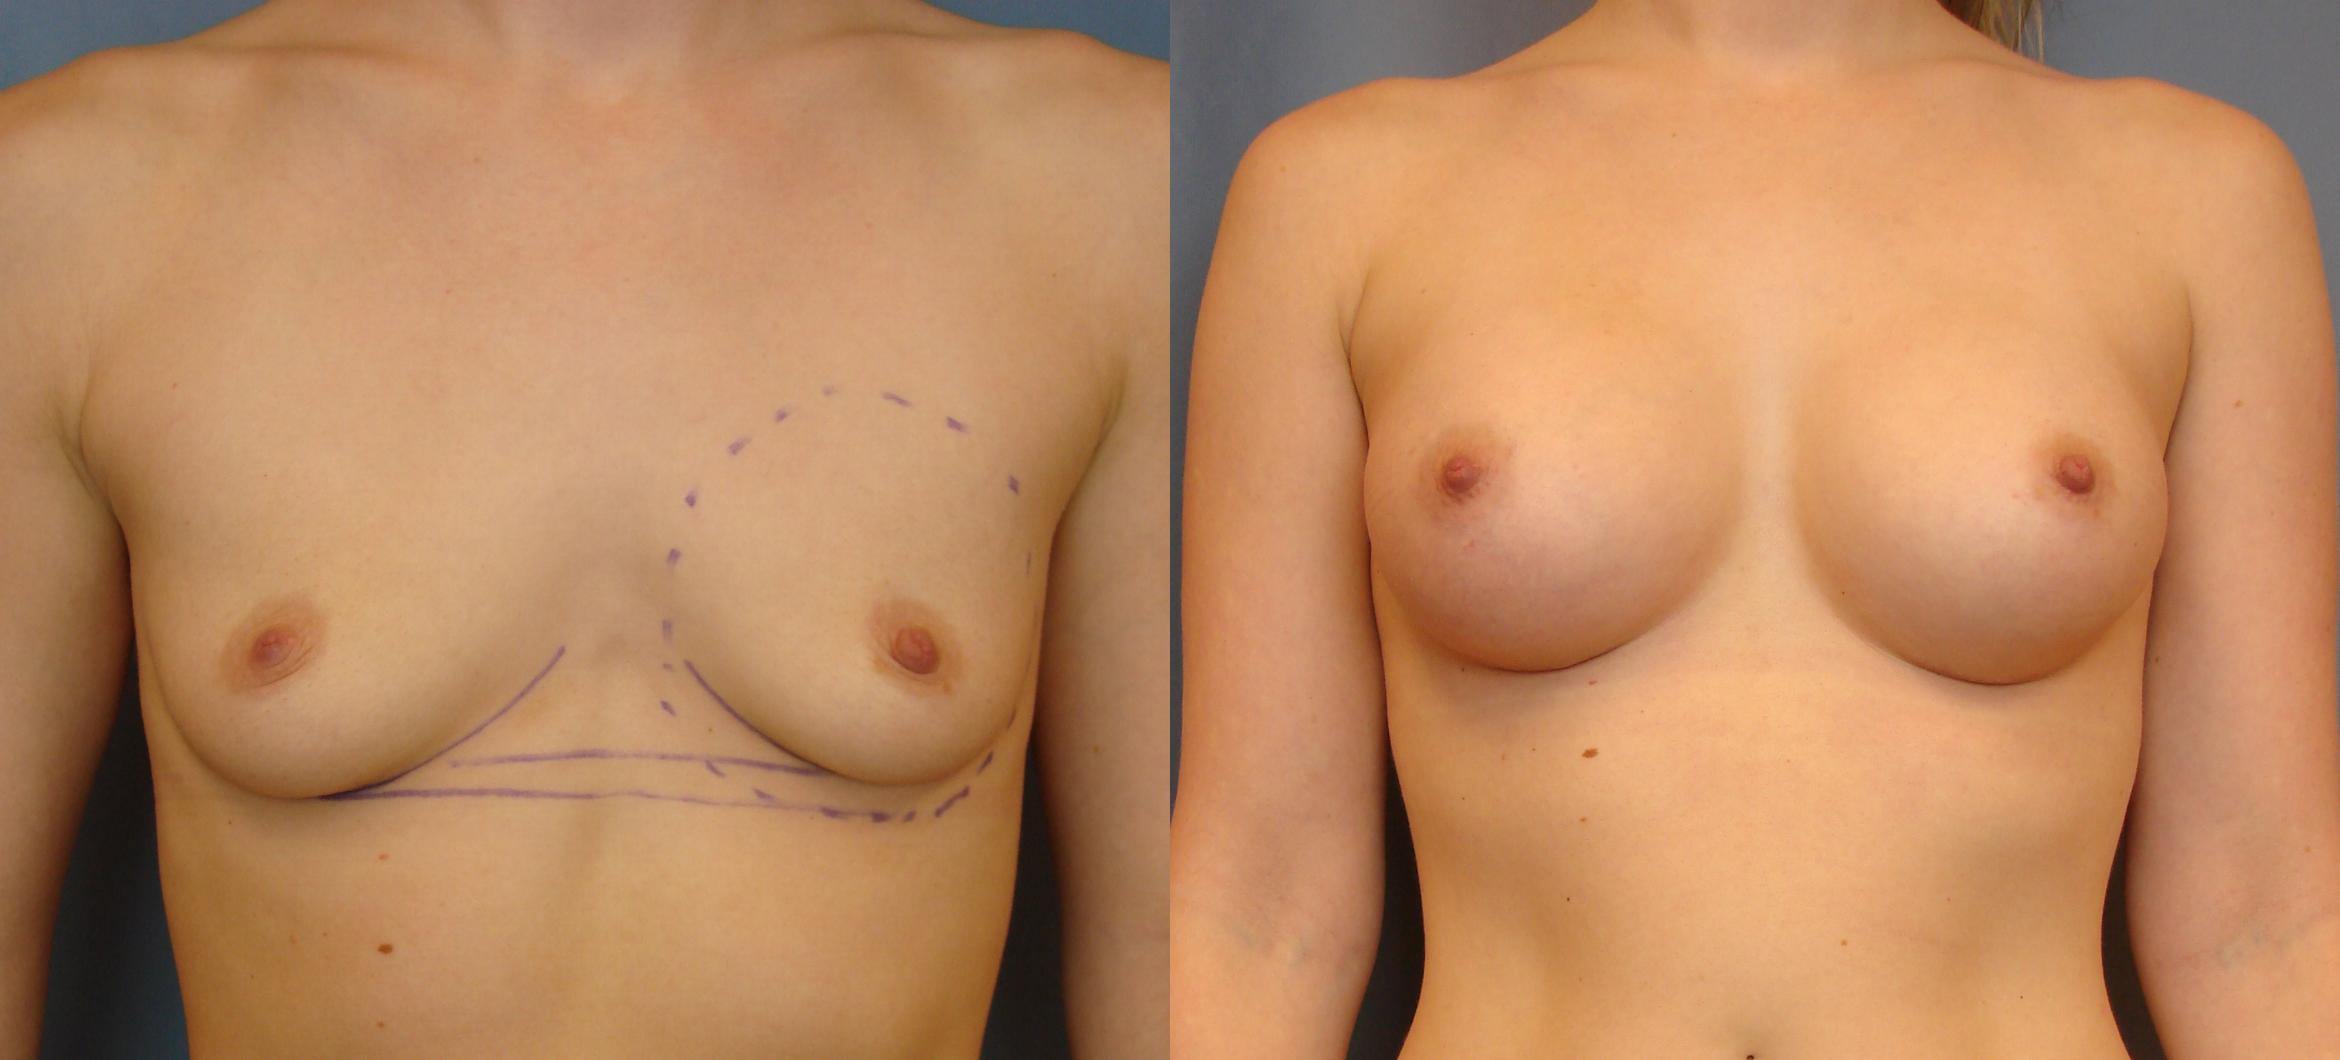 Breast Augmentation Case 68 Before & After View #1 | Birmingham, AL | Dr. Michael S. Beckenstein